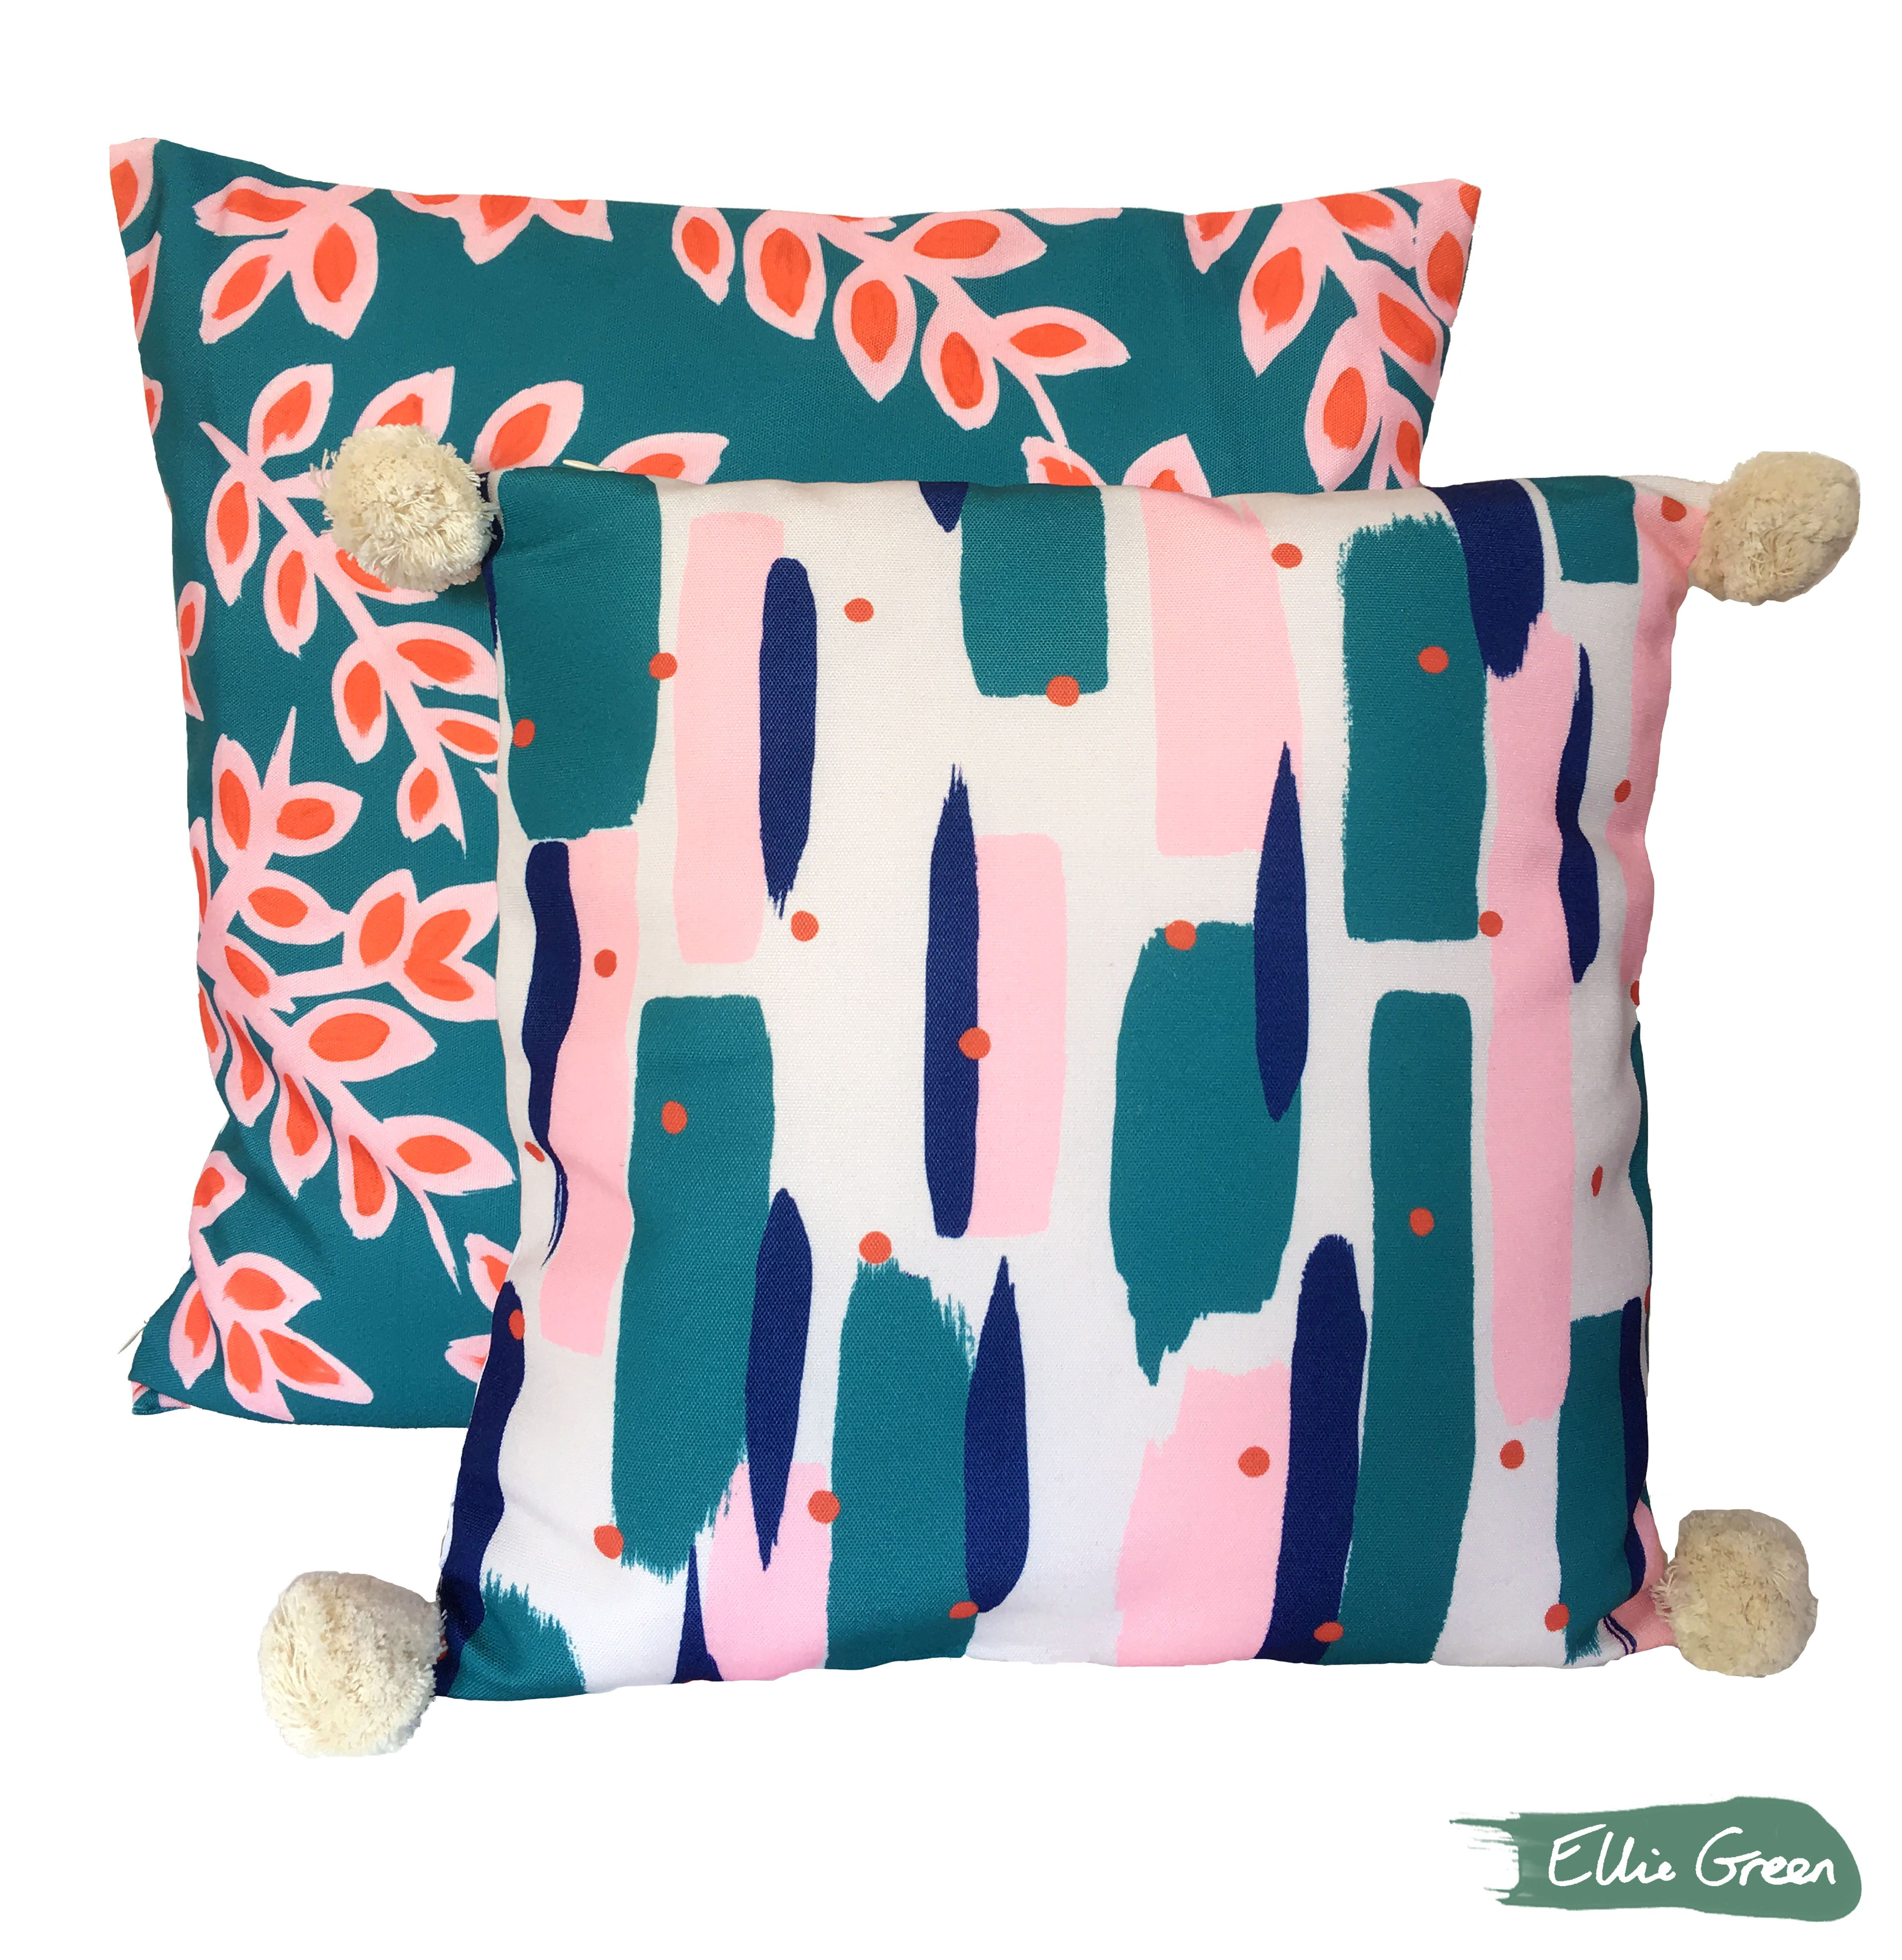 Cushions available to purchase from elliegreendesign ткани